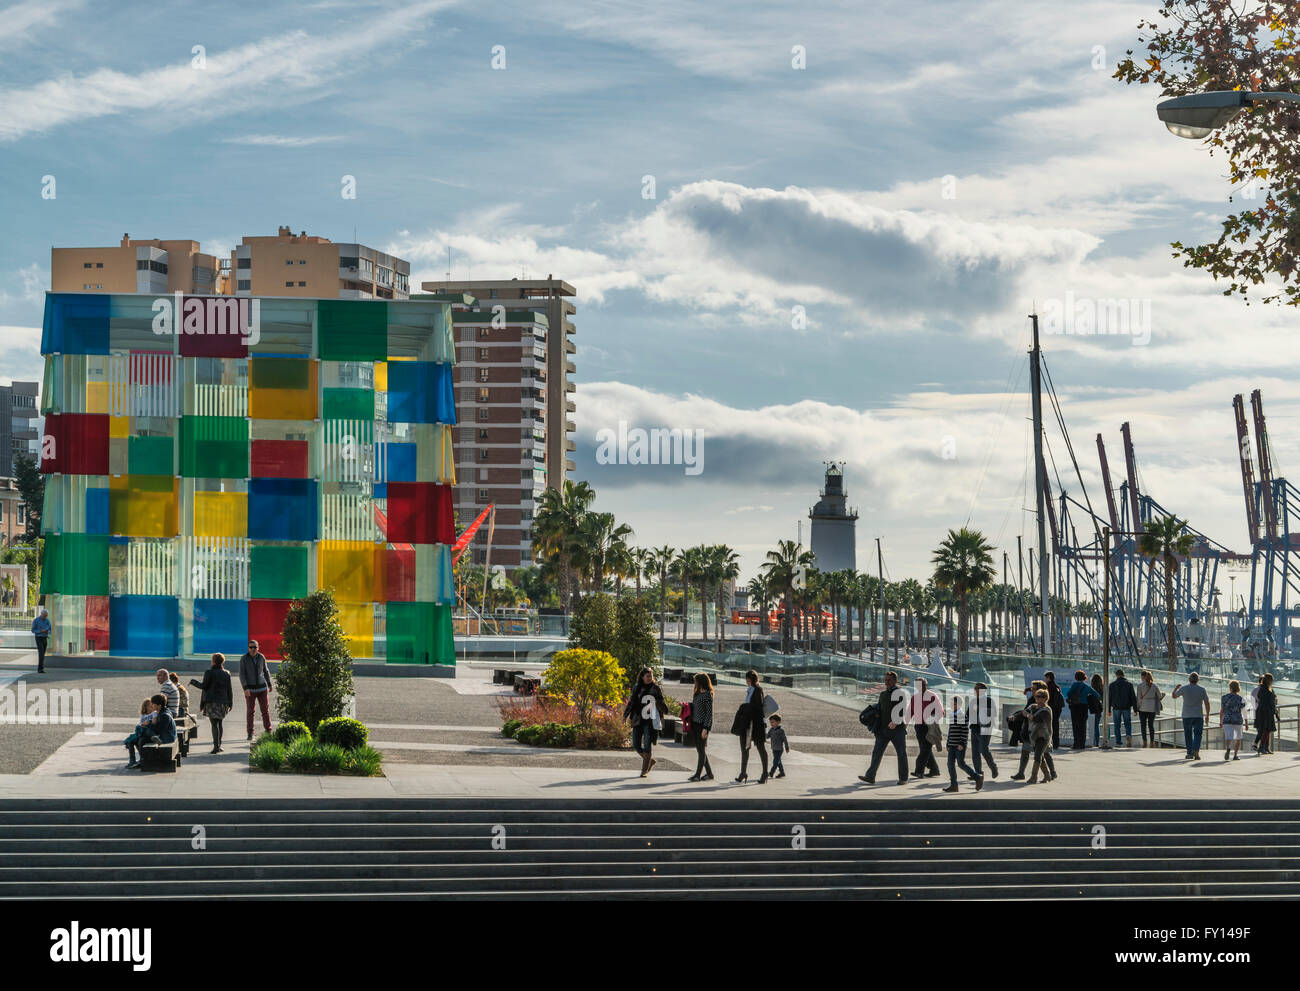 Centre Pompidou, Lighthouse, container docks, Port, Malaga, Andalusia, Spain - Stock Image